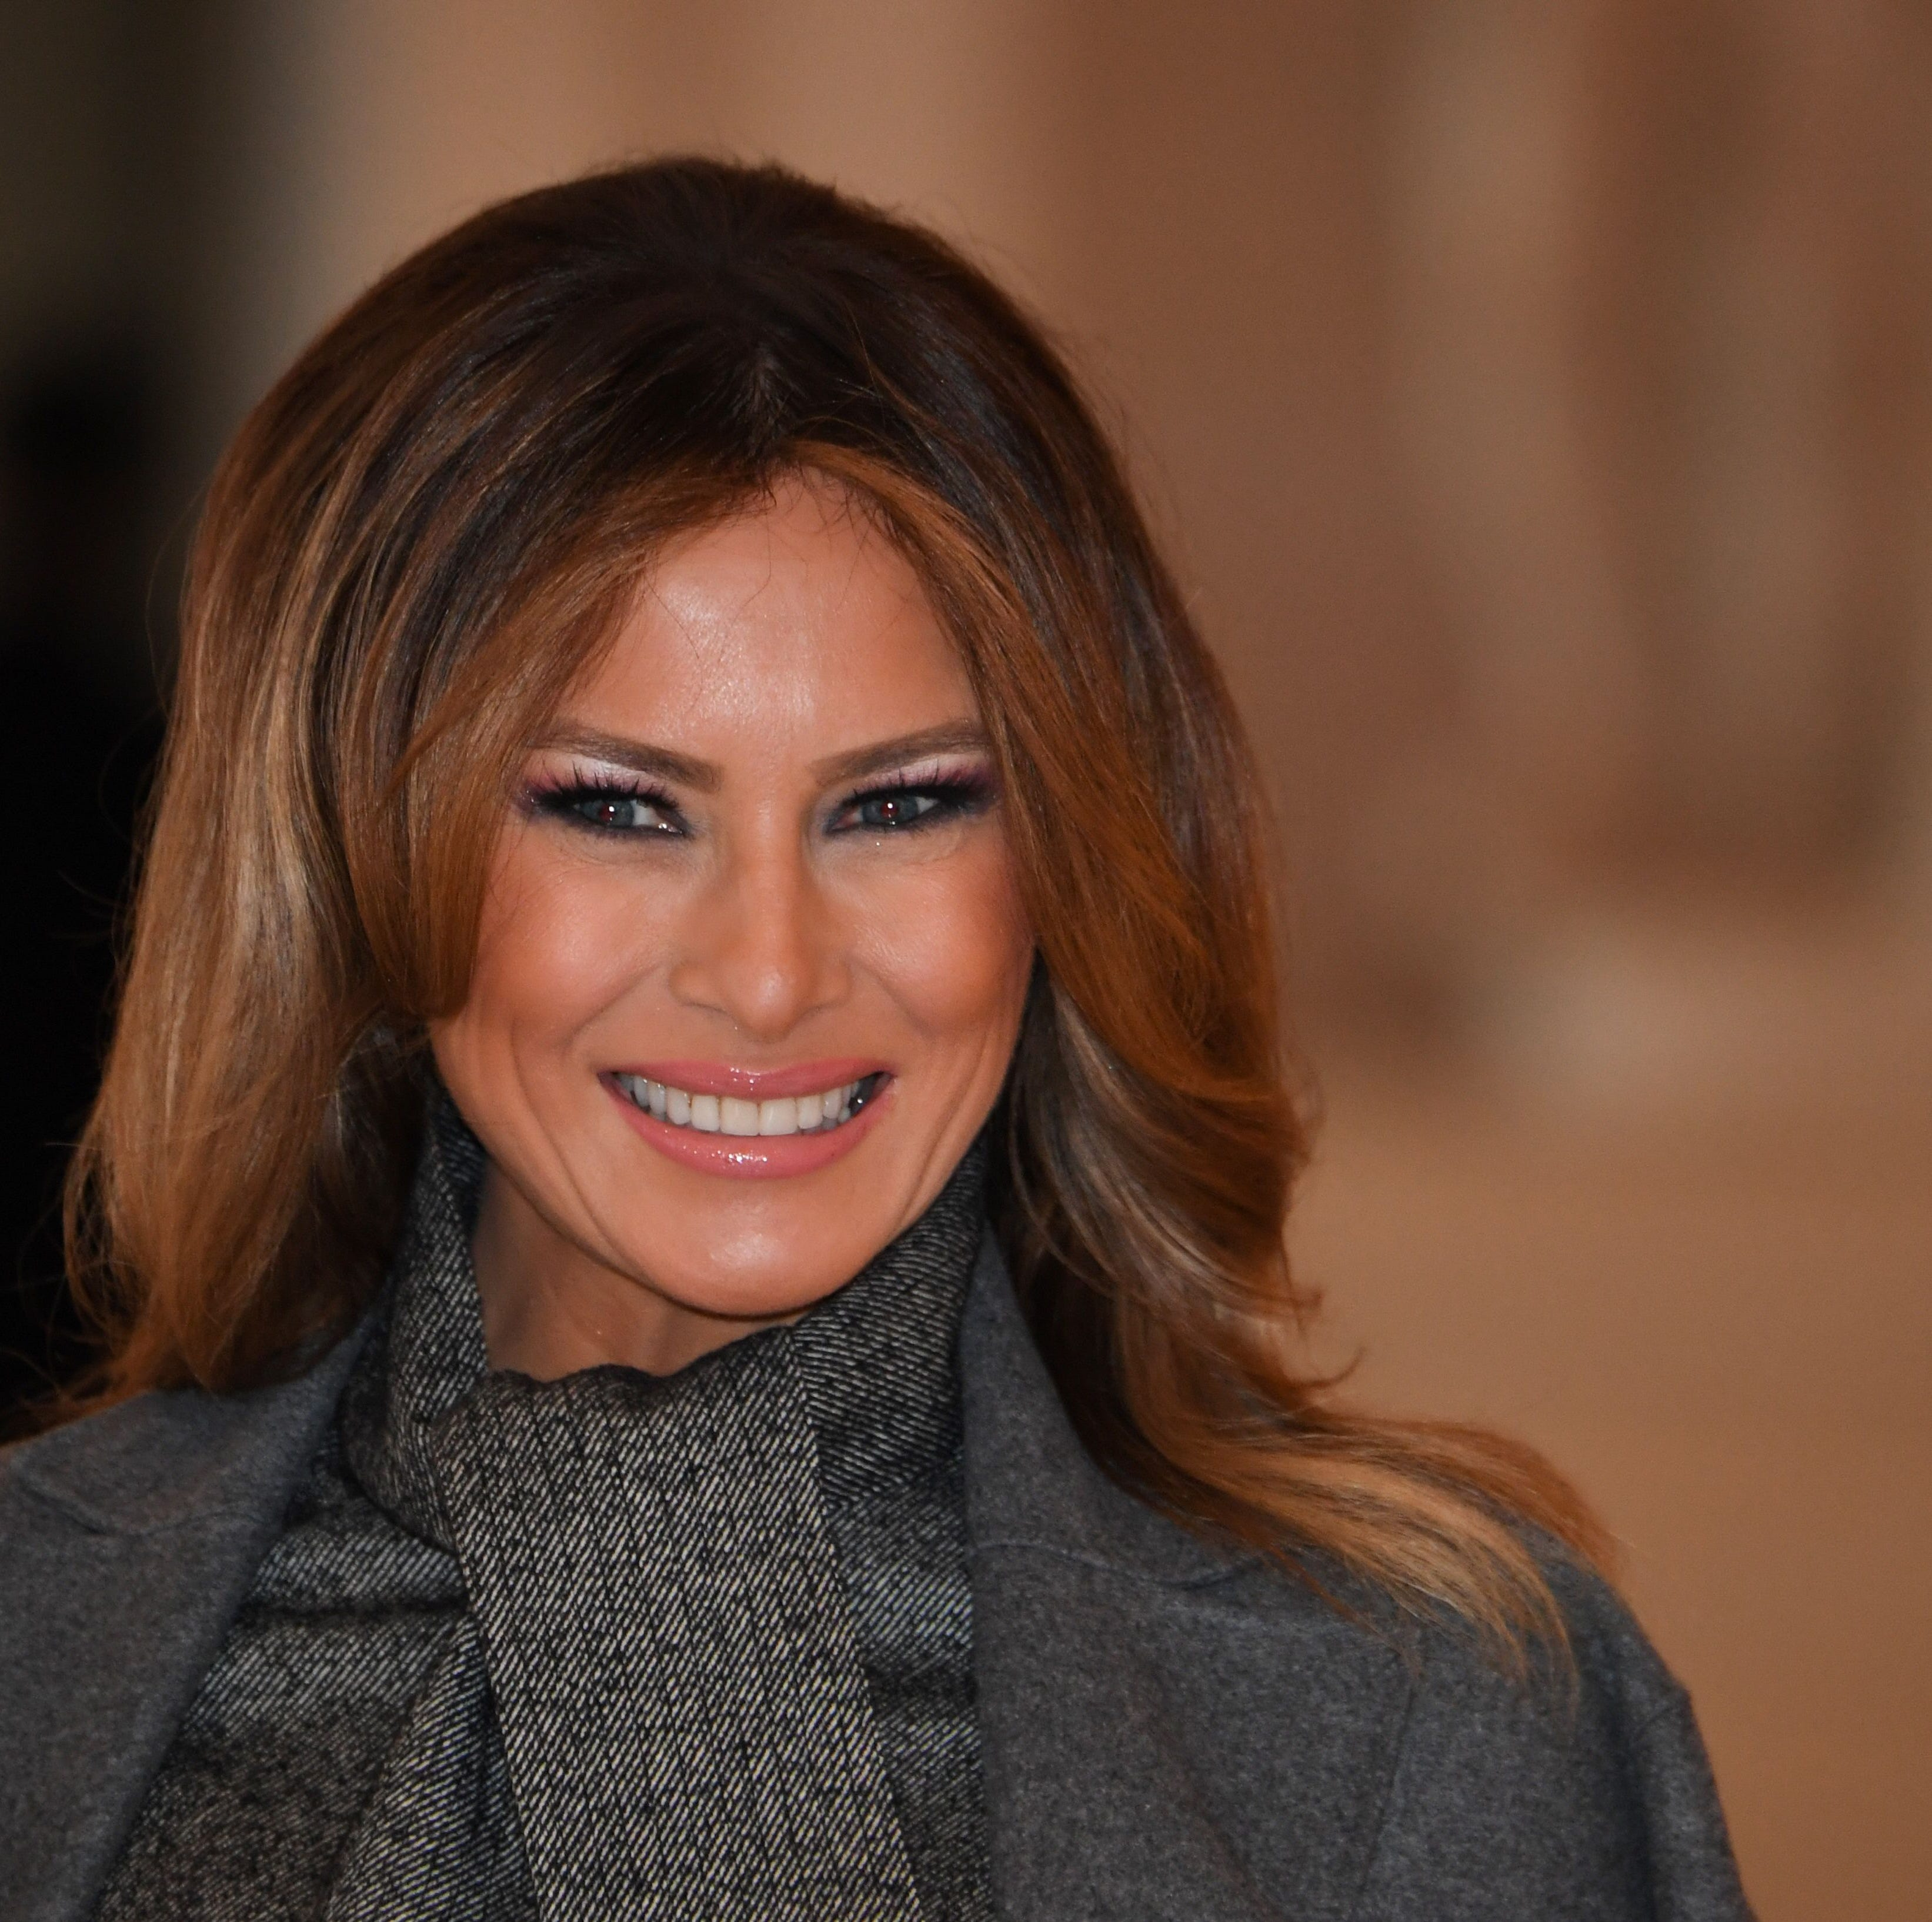 Melania Trump arrives to take part in a spousal event at the Palace of Versailles in Versailles, outside Paris, on Nov. 11, 2018, as part of commemorations marking the 100th anniversary of the armistice ending World War I.